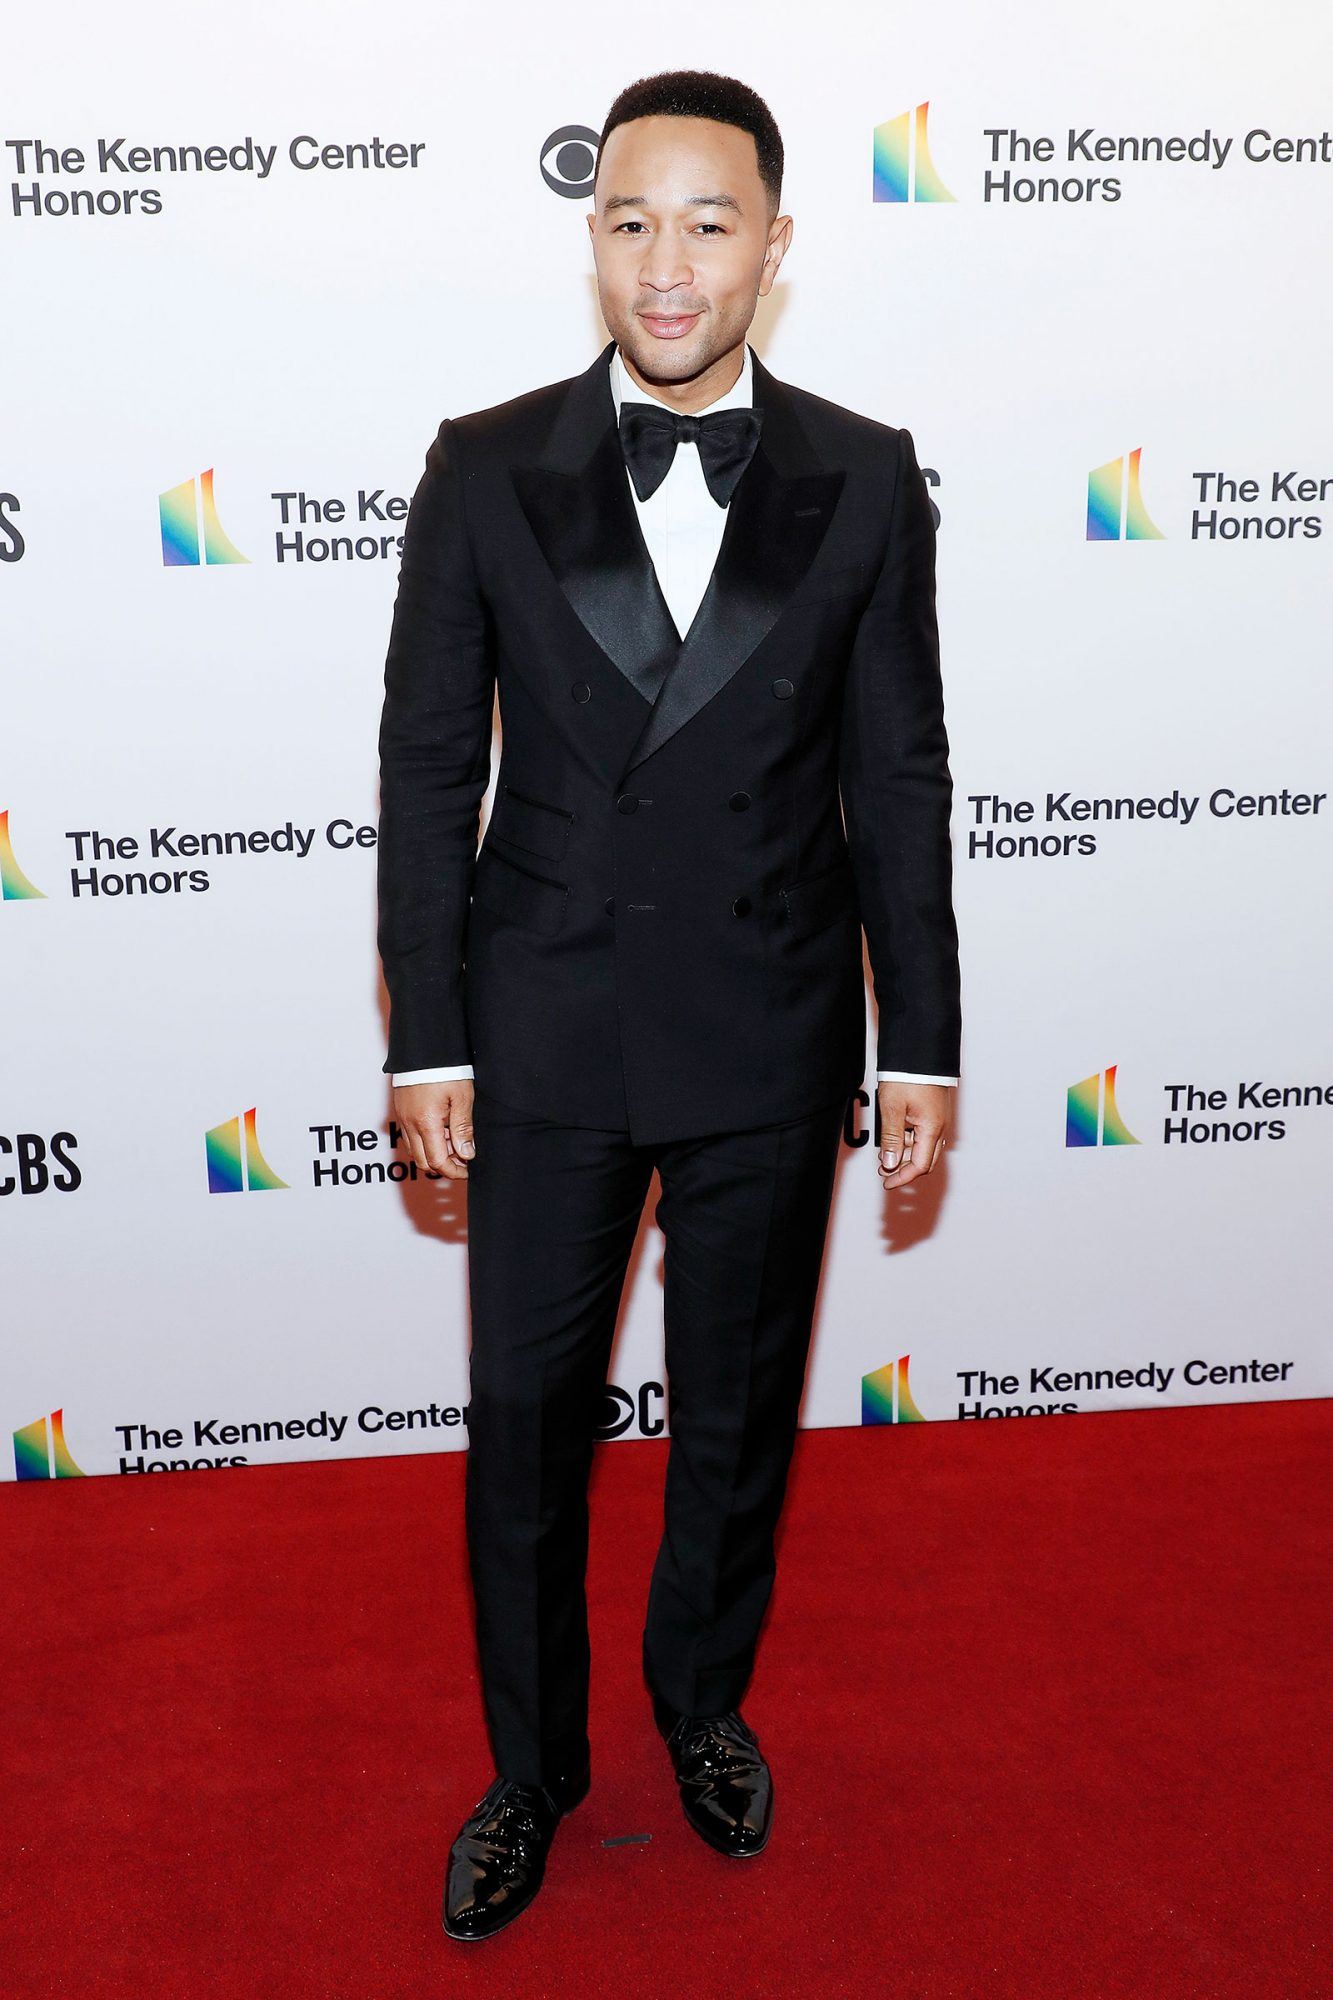 John Legend attends the 2019 Kennedy Center Honors at The Kennedy Center on December 08, 2019 in Washington, DC.